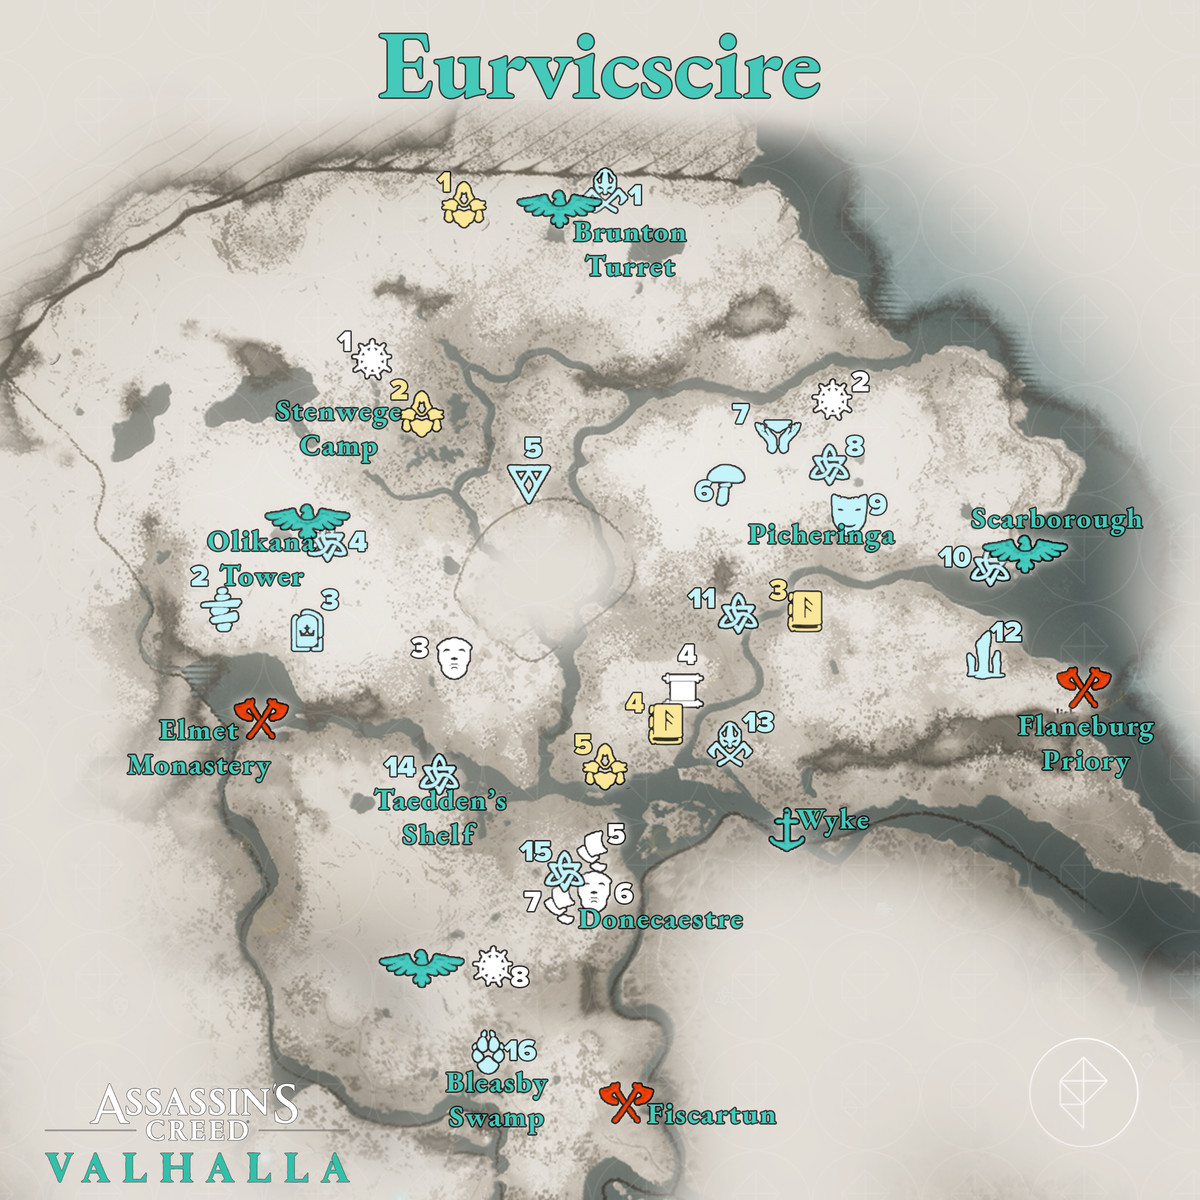 Euriviscire Wealth, Mysteries, and Artifacts locations map